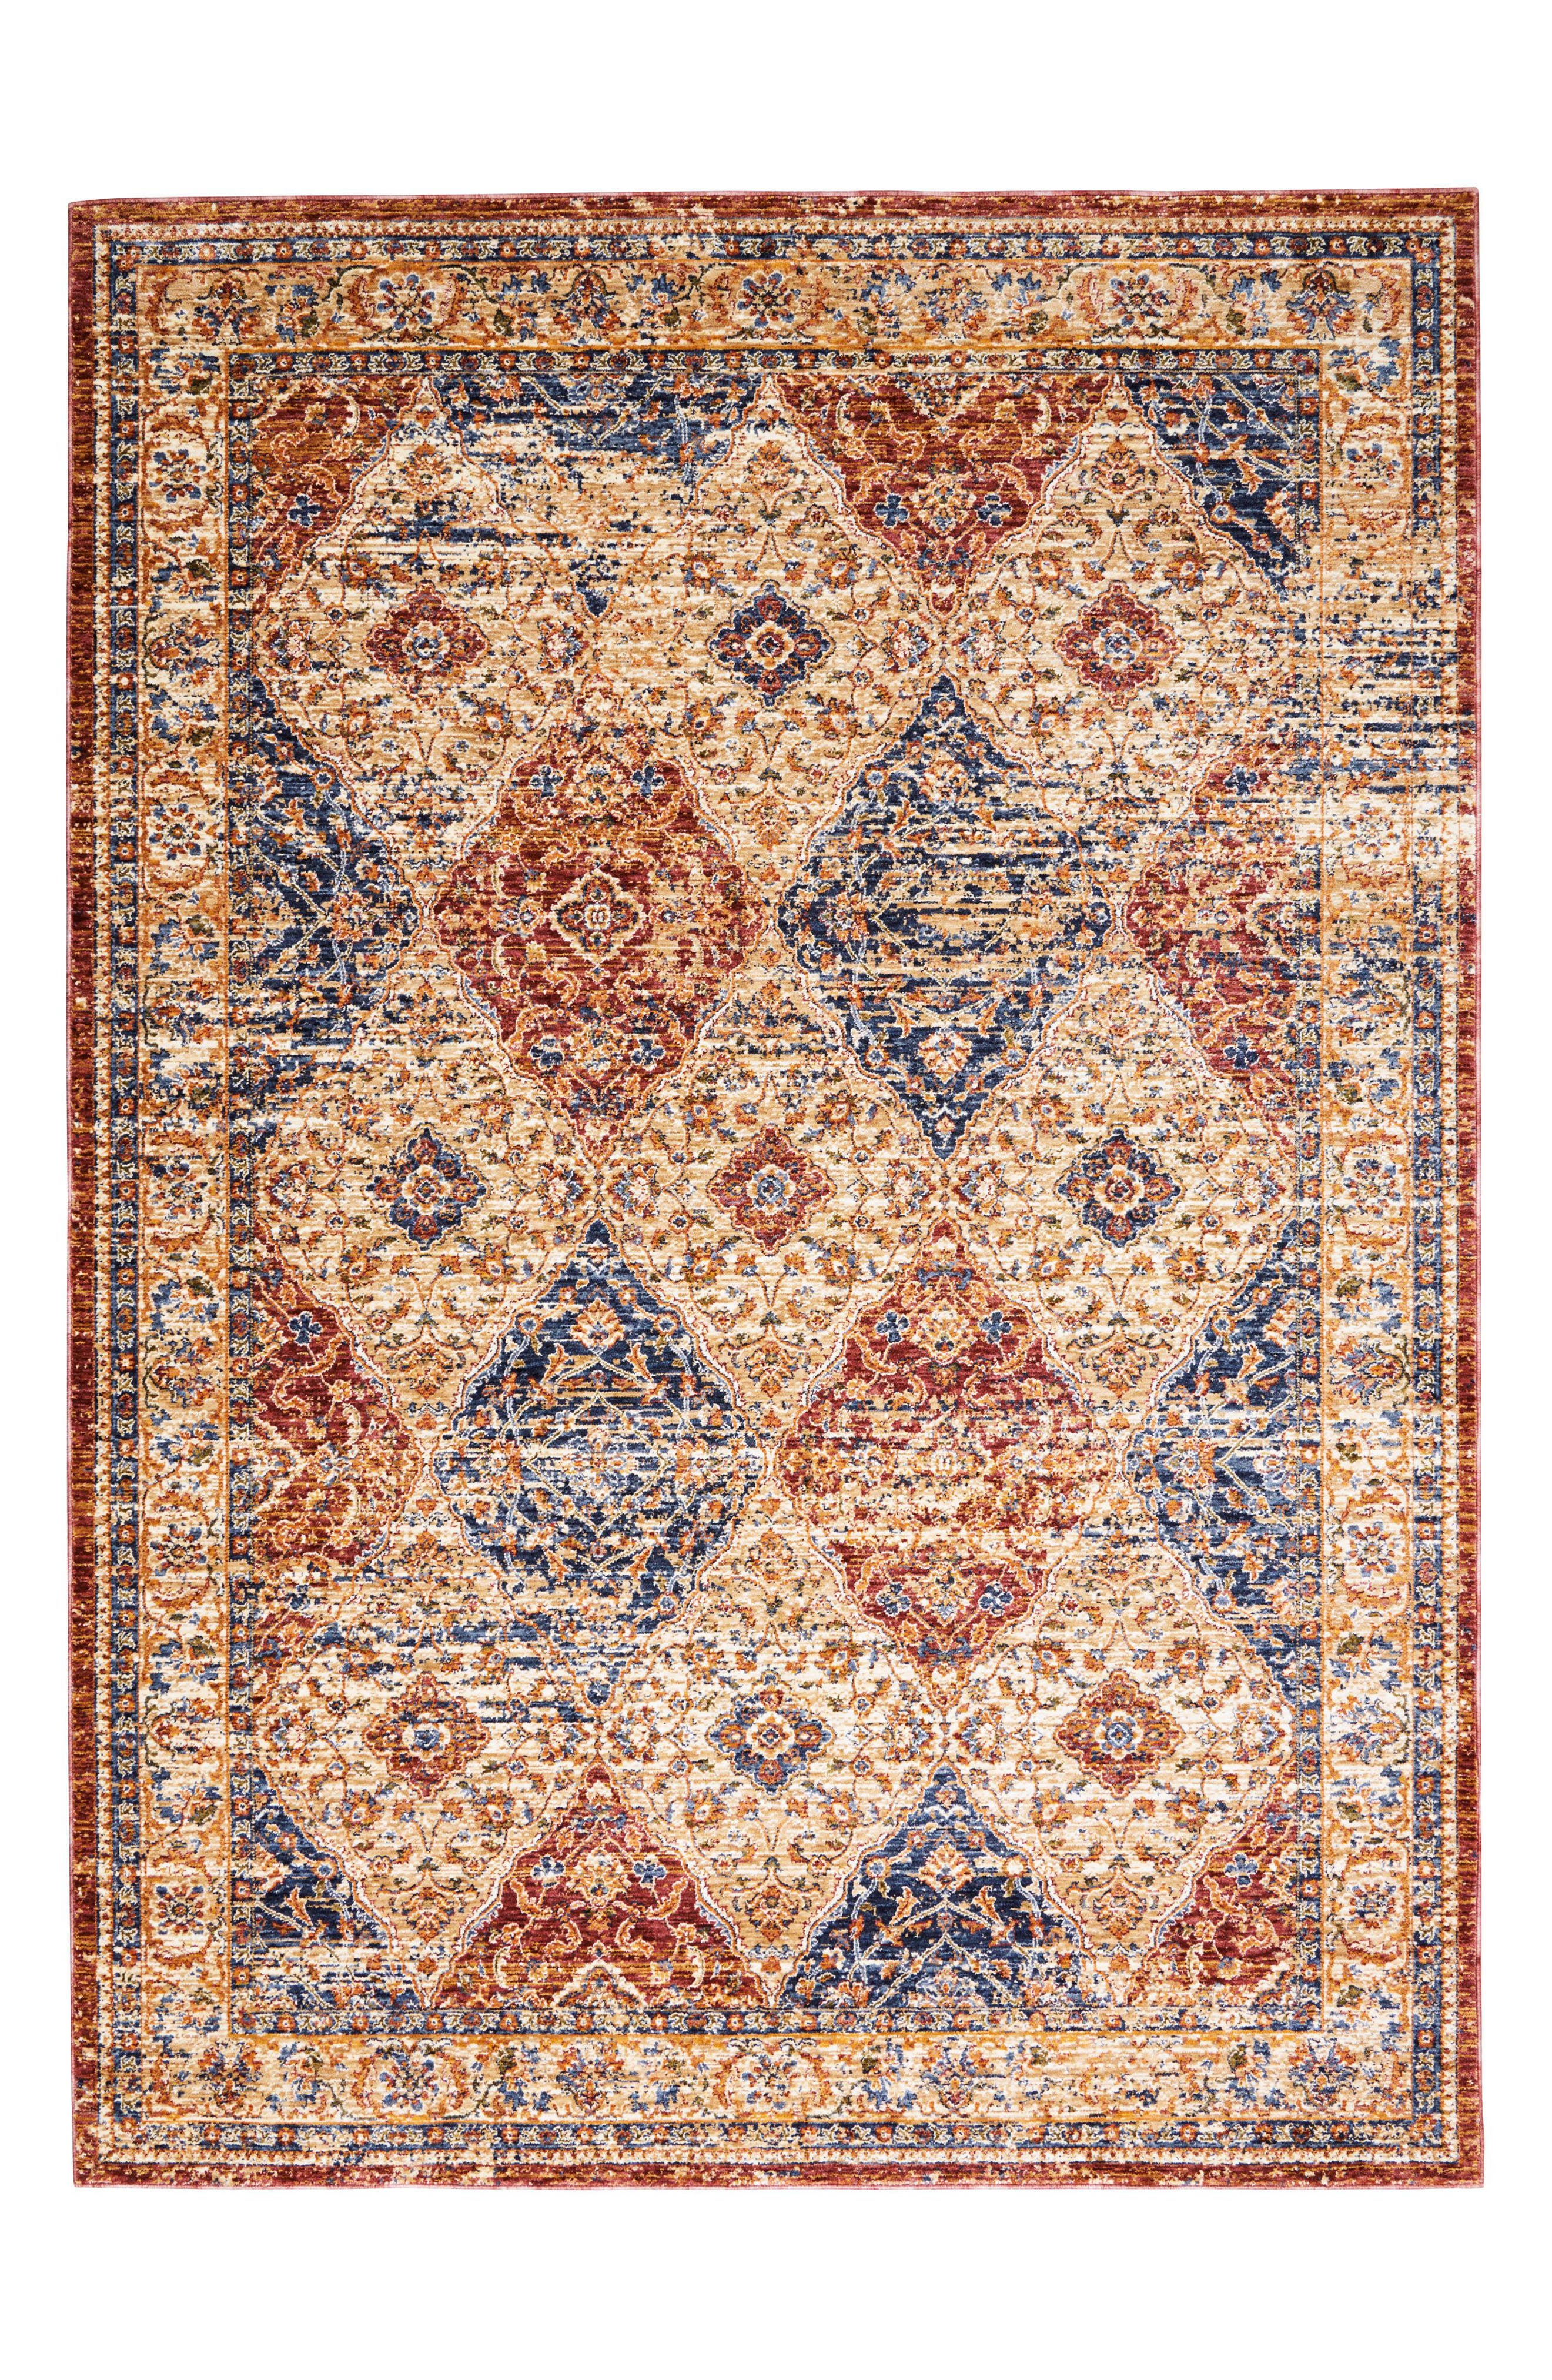 Reseda Rug,                         Main,                         color, 800